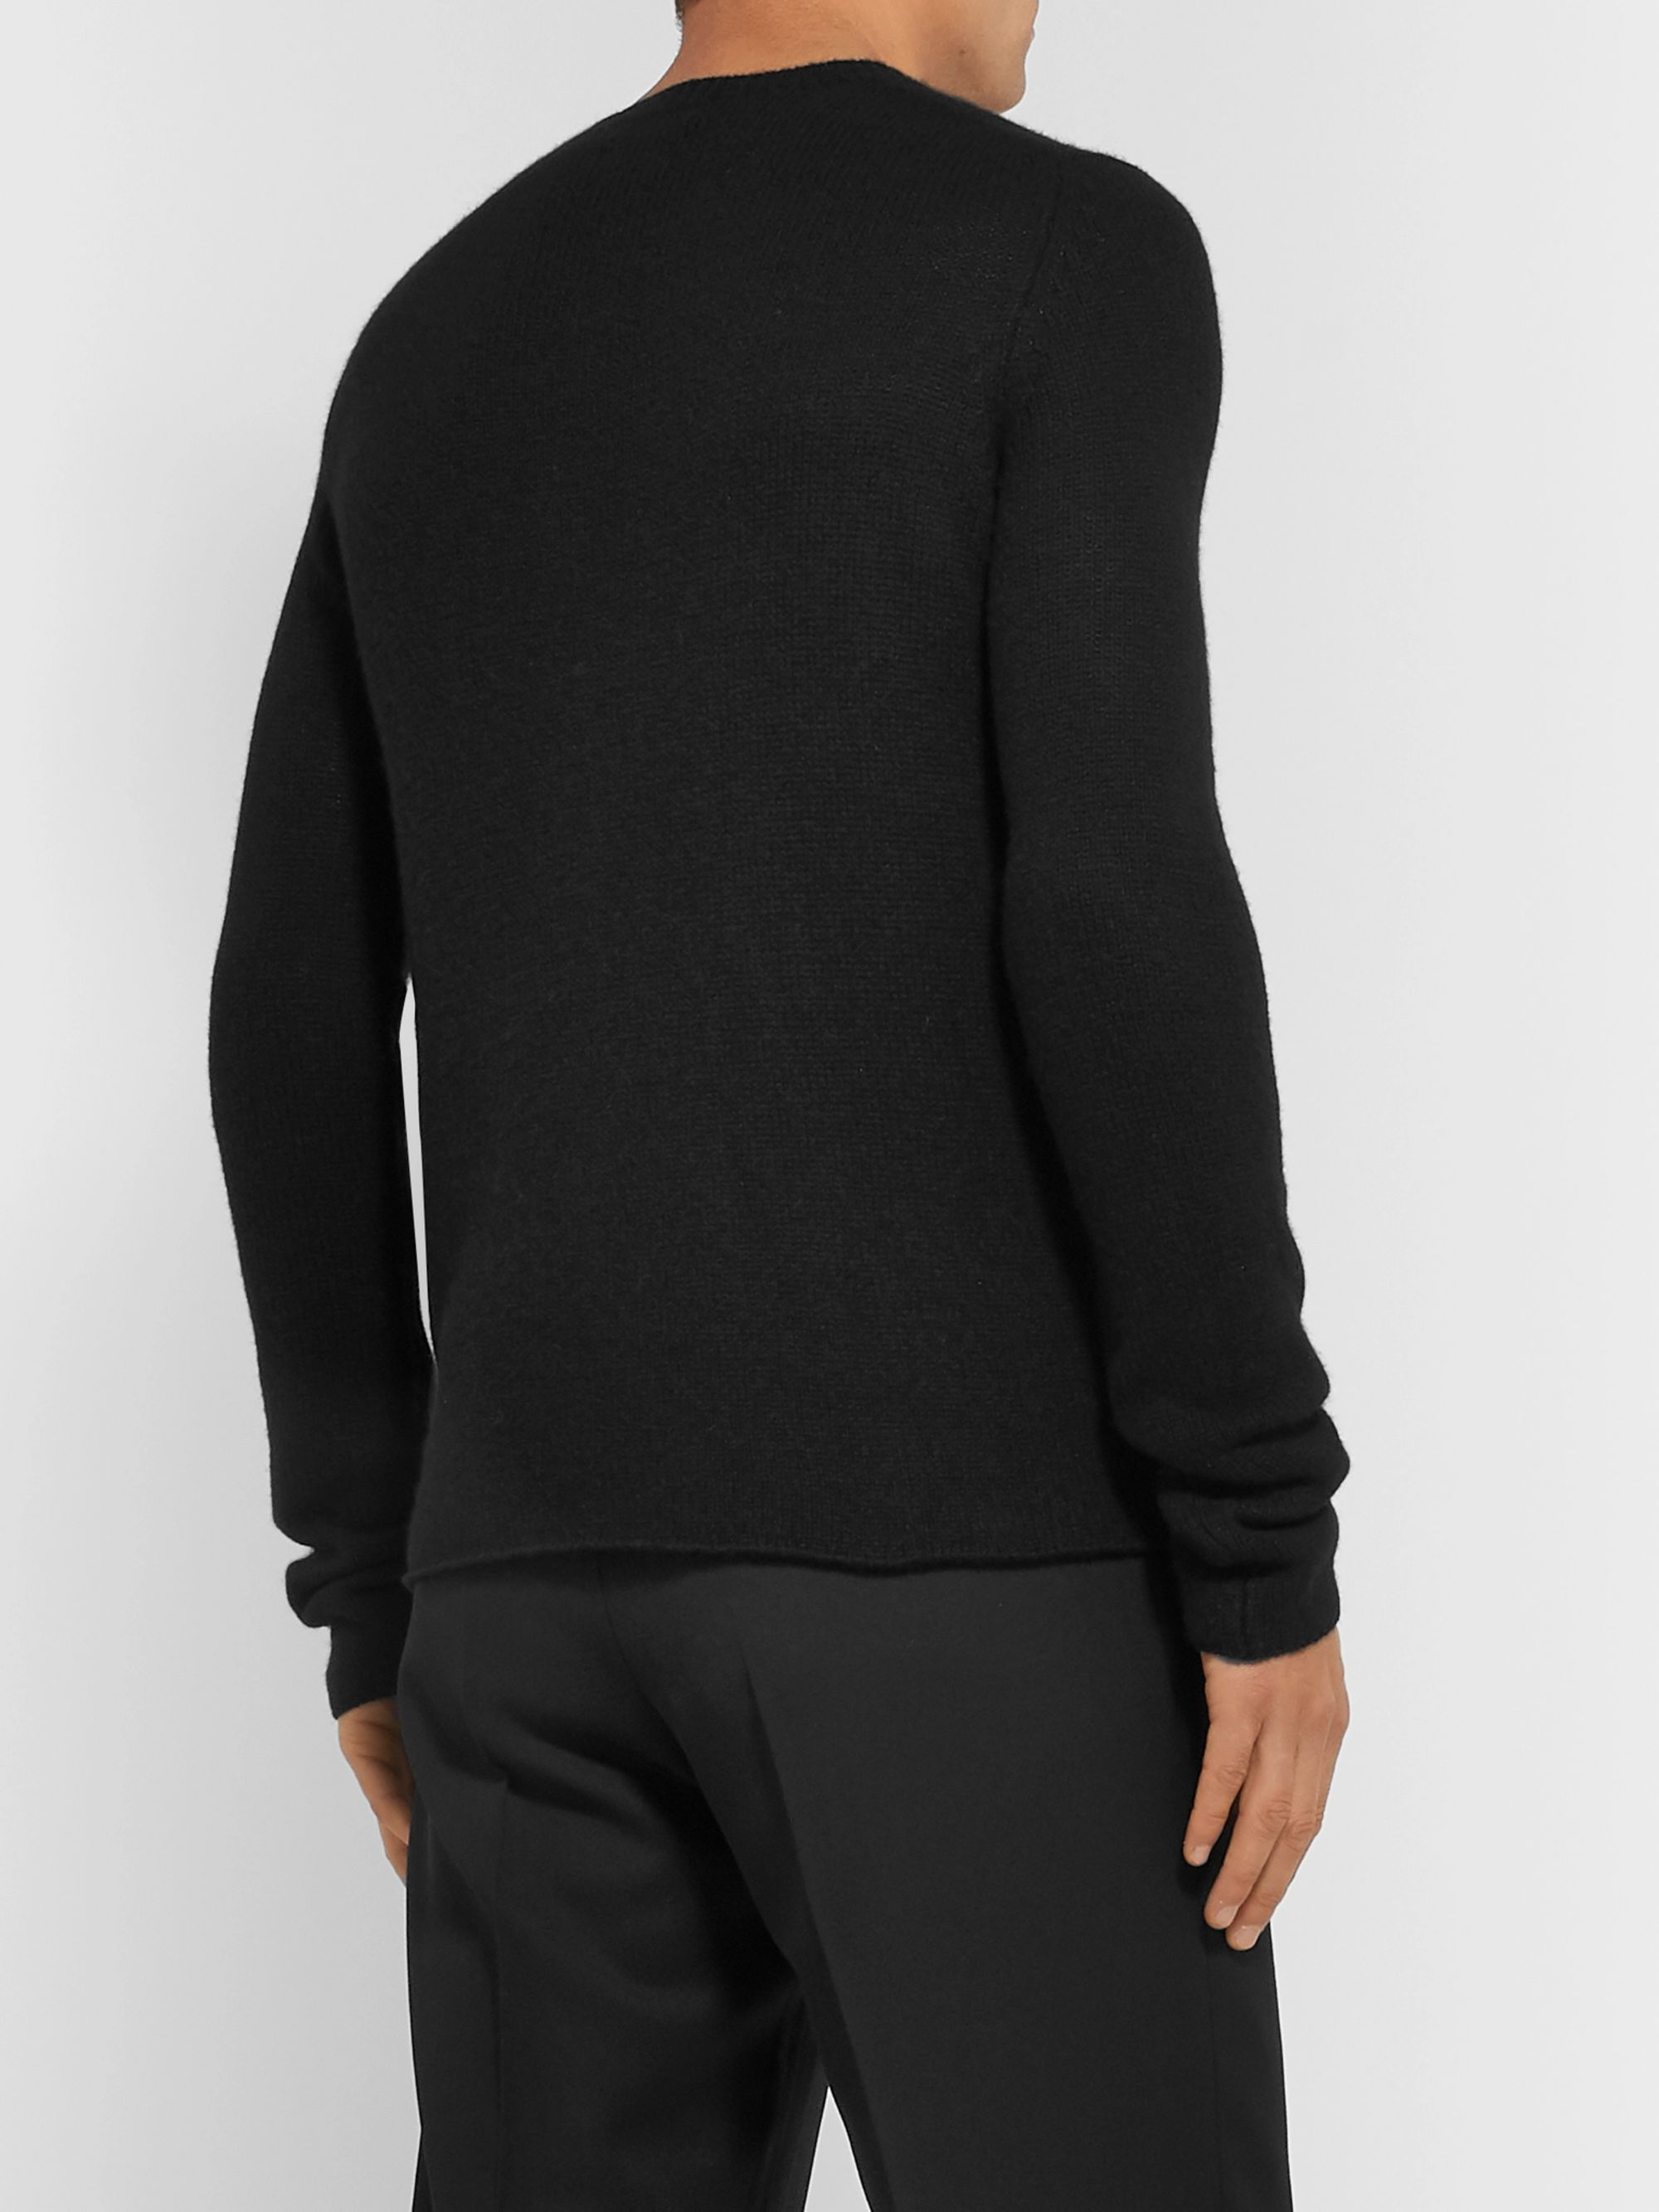 Bottega Veneta Slim-Fit Cashmere Sweater